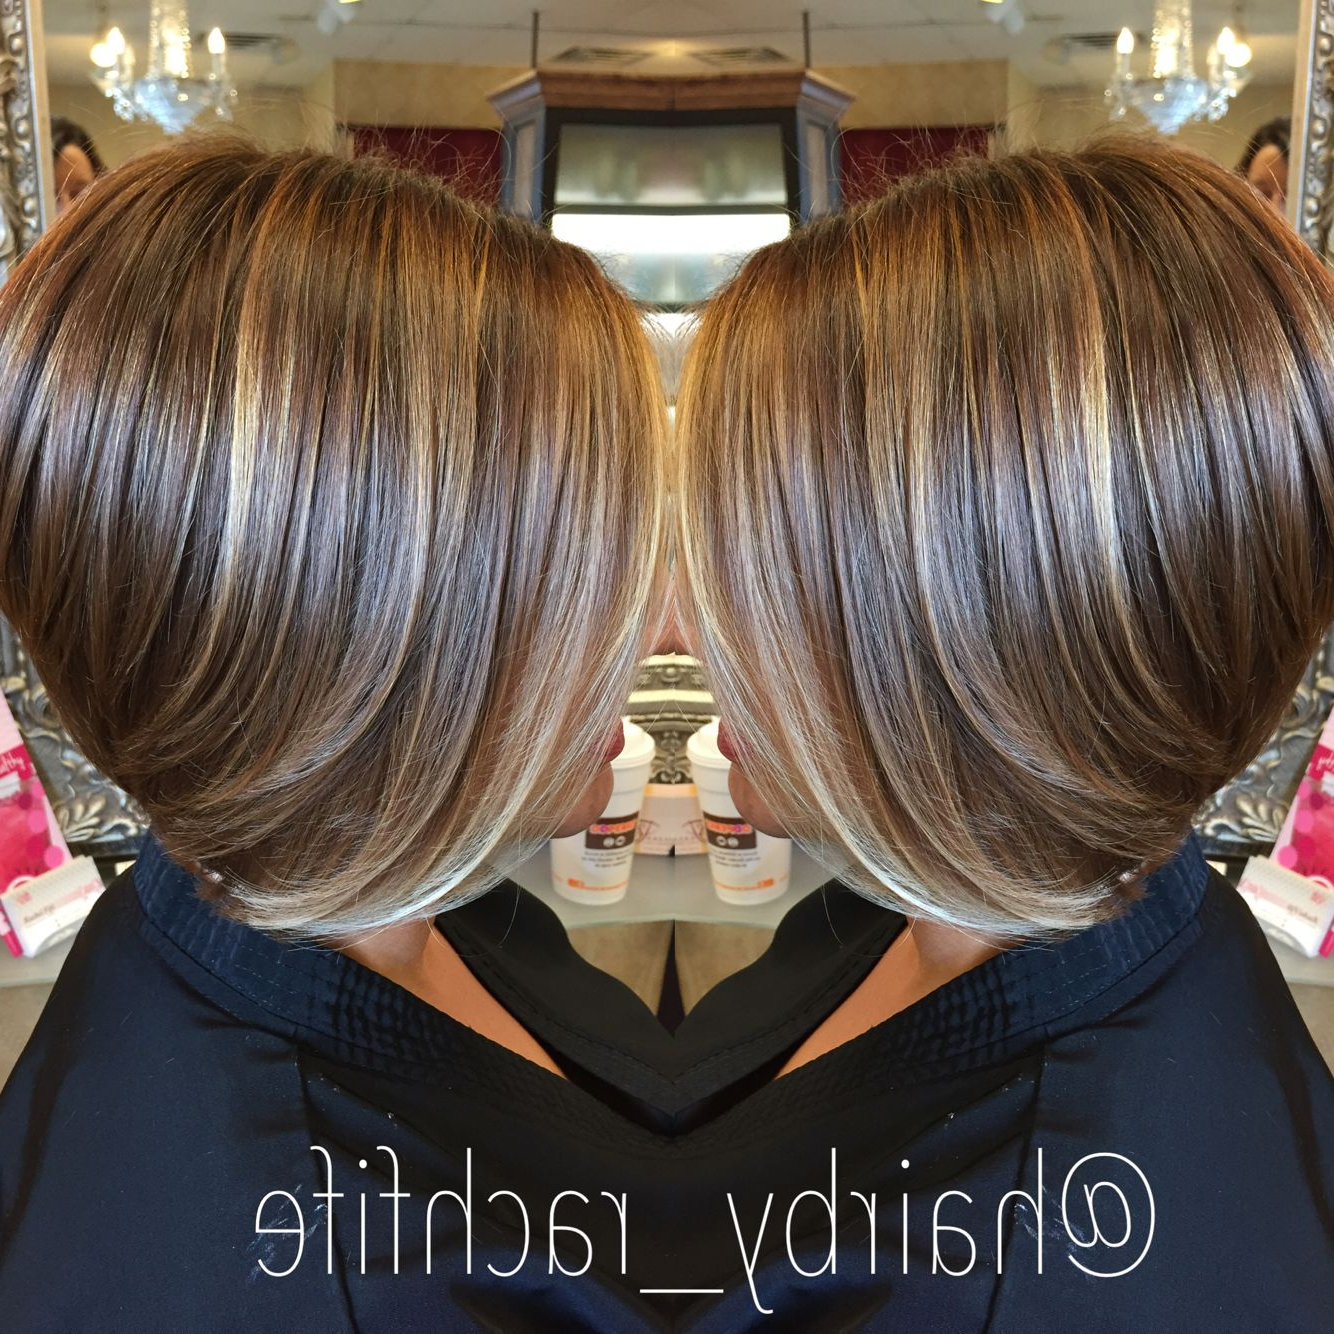 Short Bob Haircut With Subtle Balayage Highlights. Hairrachel Inside 2017 Point Cut Bob Hairstyles With Caramel Balayage (Gallery 19 of 20)